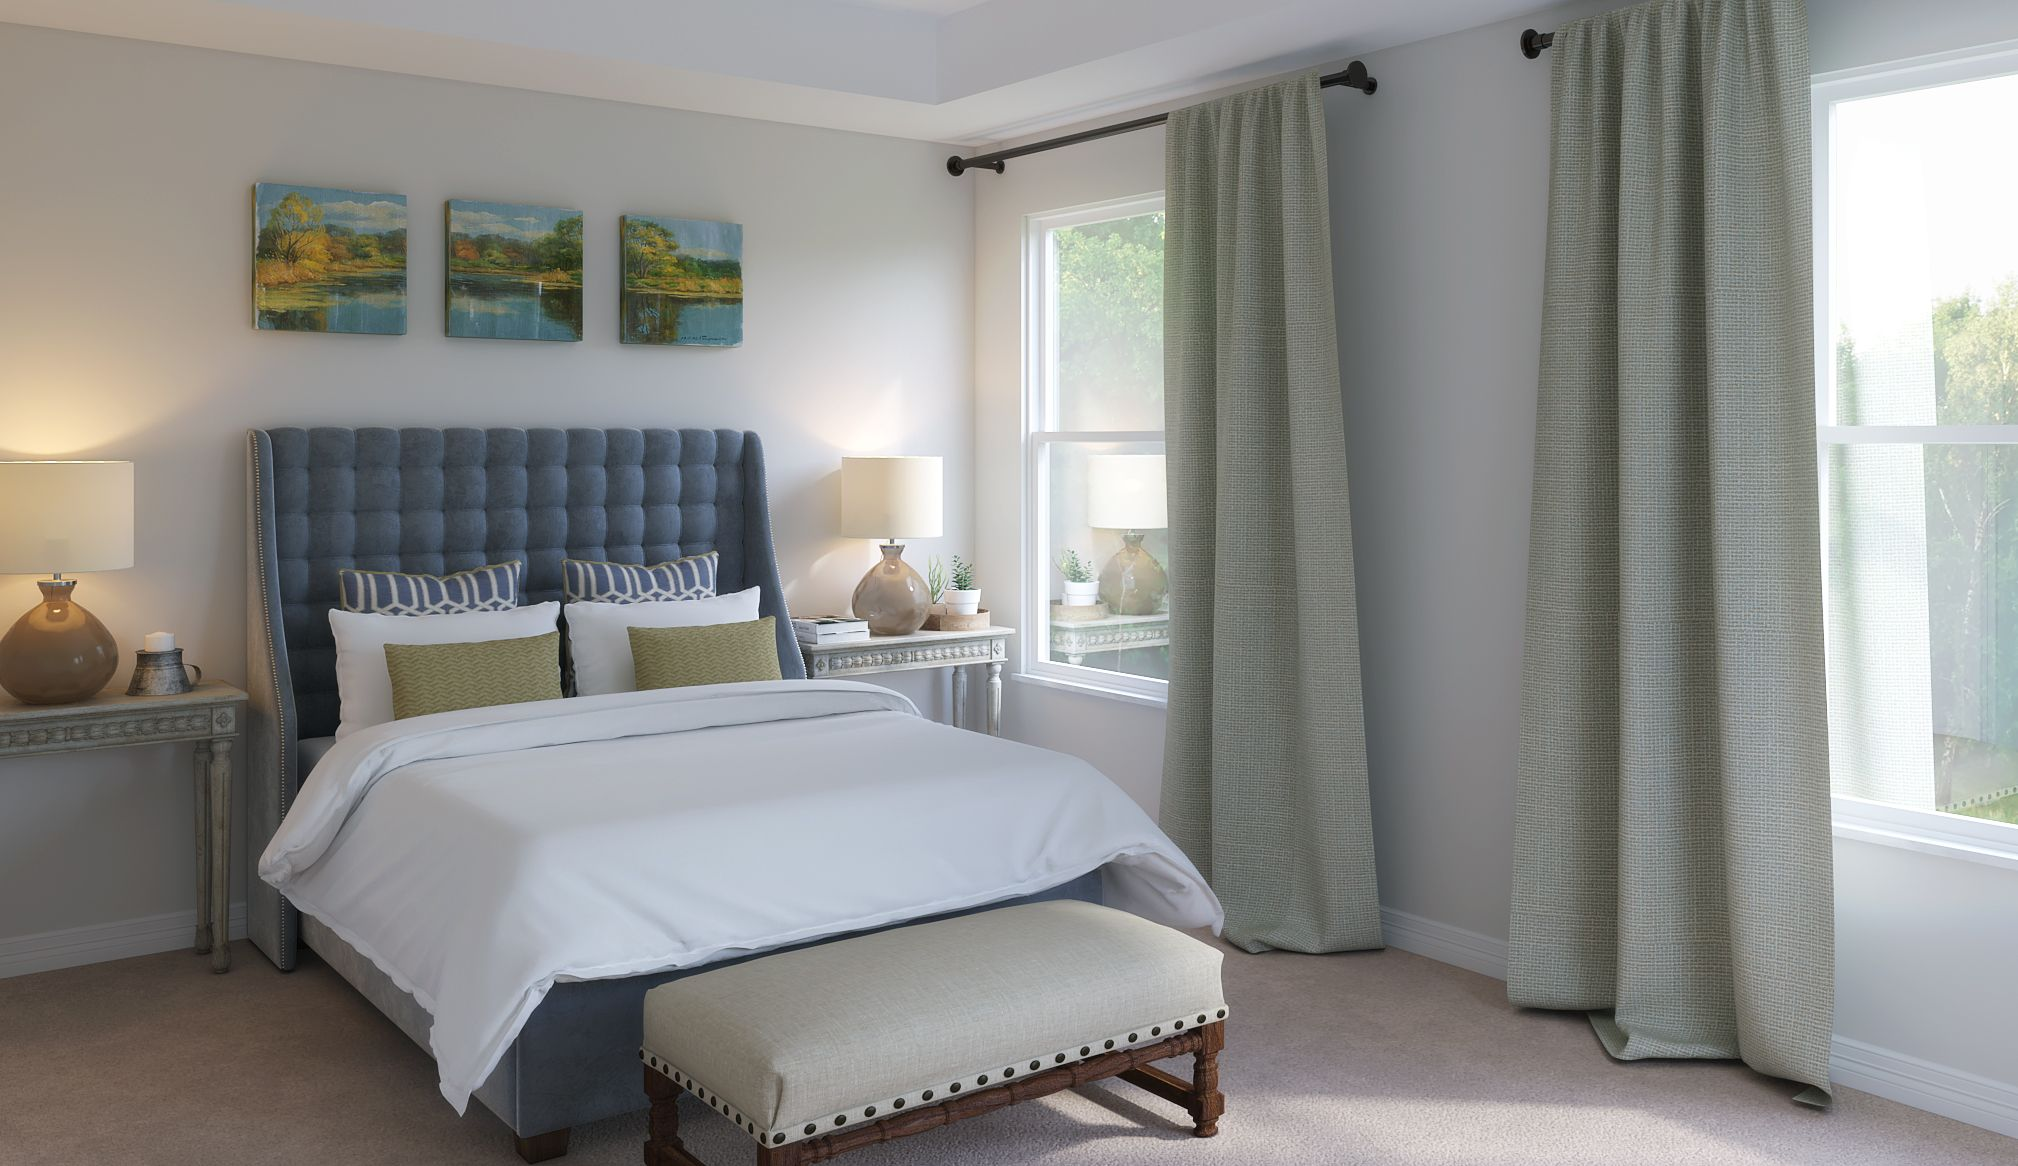 Bedroom featured in the Del Rio By Ashton Woods in San Antonio, TX